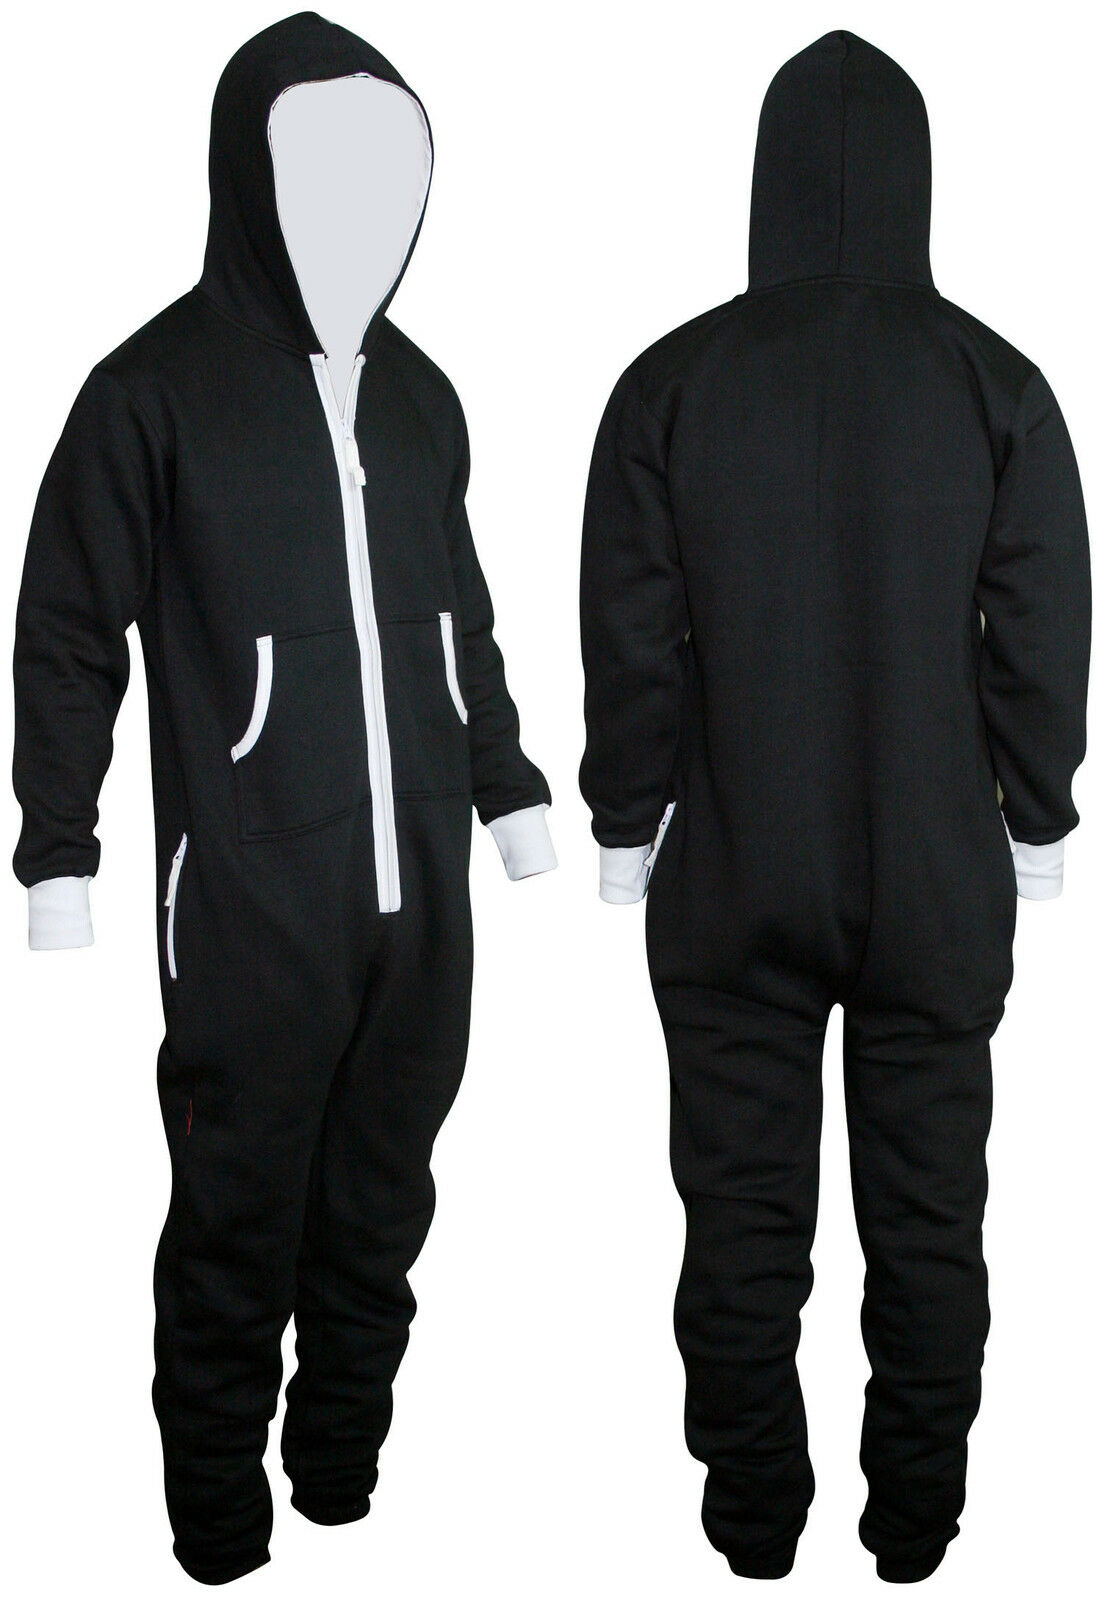 c1220e9d0bc7 Adults Mens Onesie Non Footed Jumpsuit ZIPPER Hoodie Playsuit ...